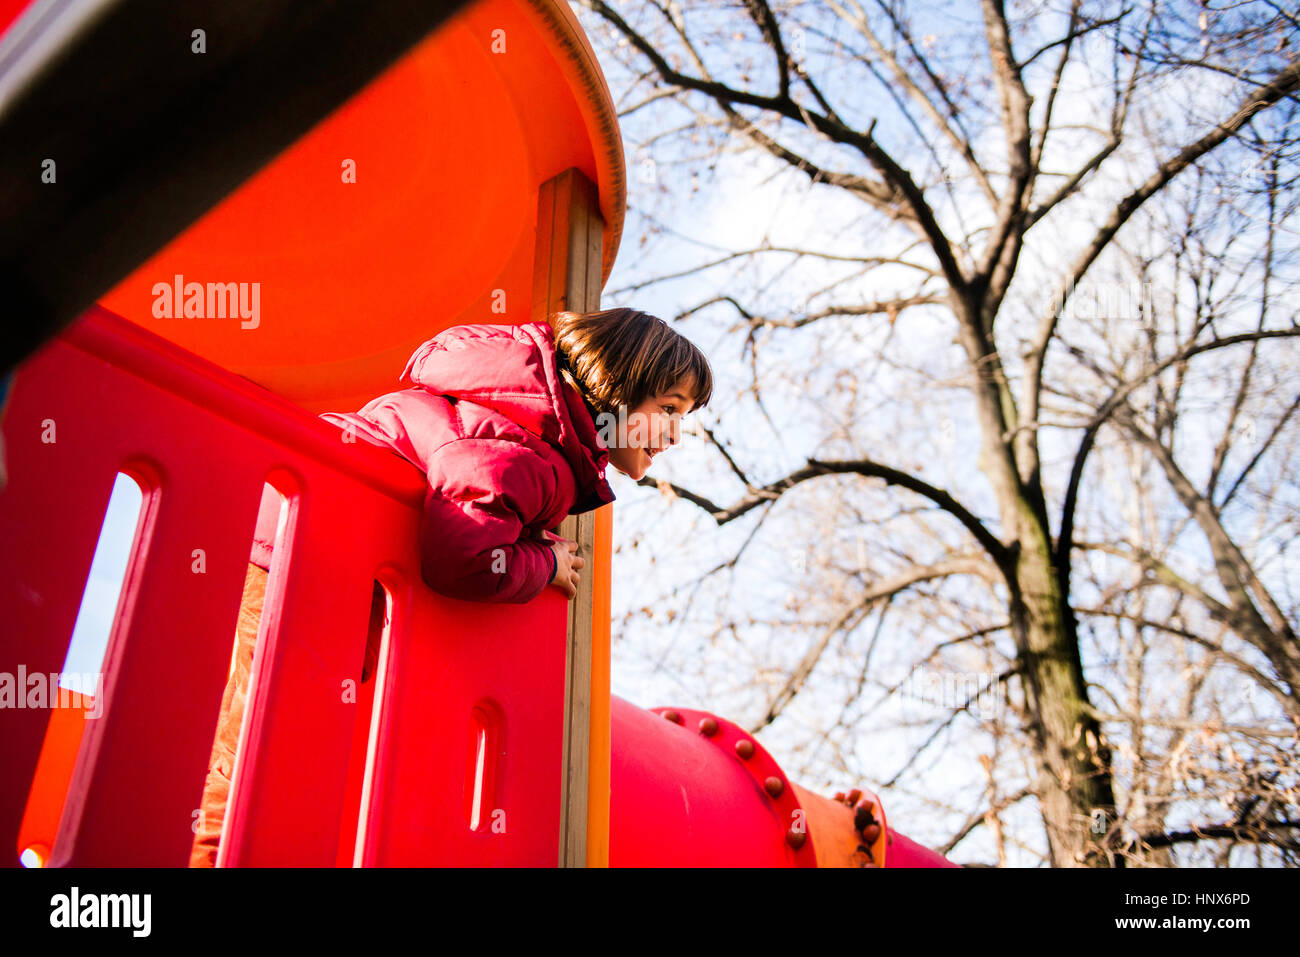 Boy looking out from top of red playground slide - Stock Image